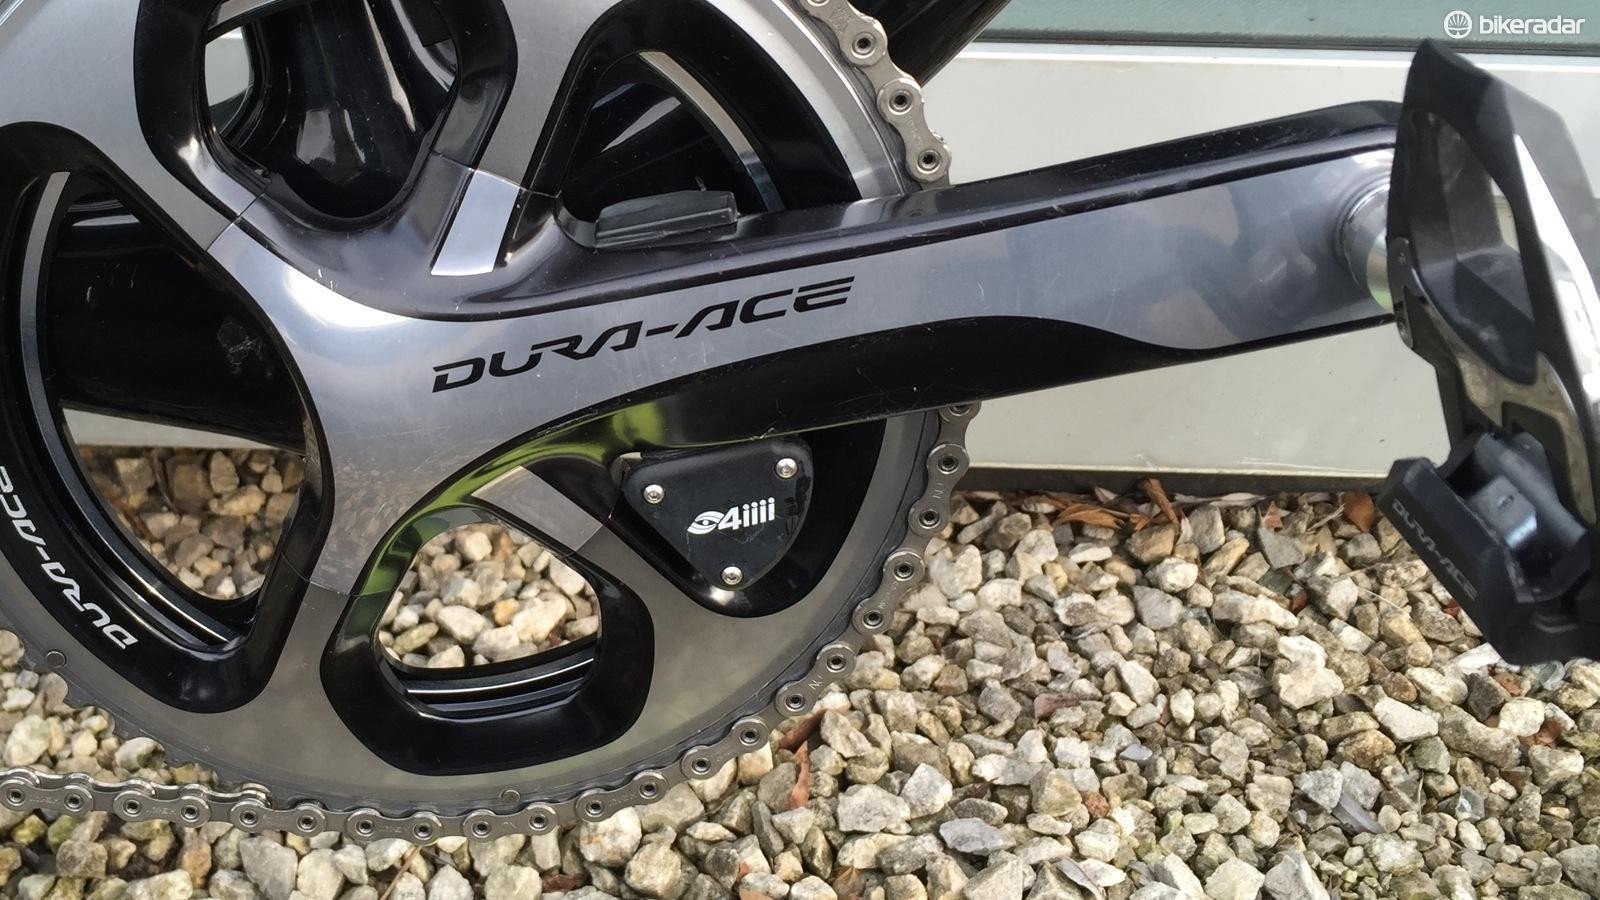 This is Boonen's Precision Pro that he used at the 2016 Paris-Roubaix, where he placed second